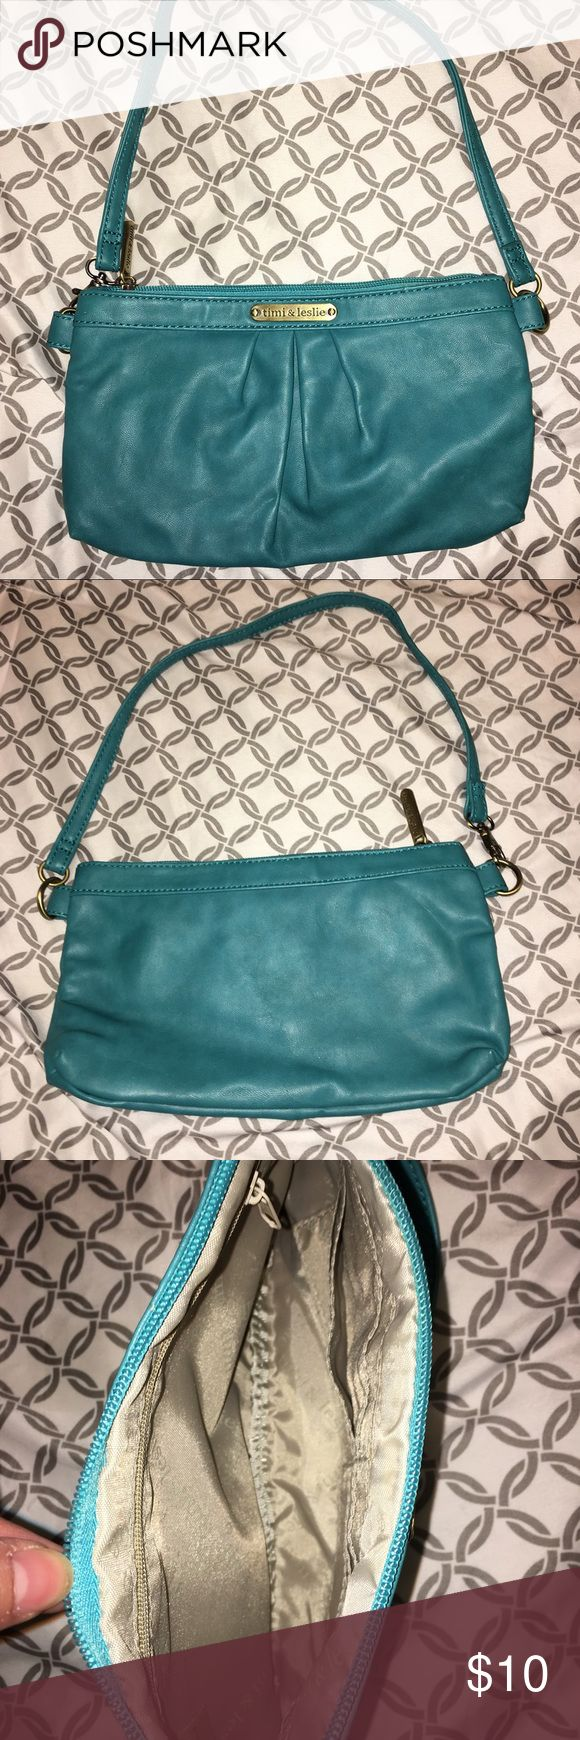 Timi & Leslie blue wristlet from diaper bag Gently used condition timi & leslie Bags Clutches & Wristlets